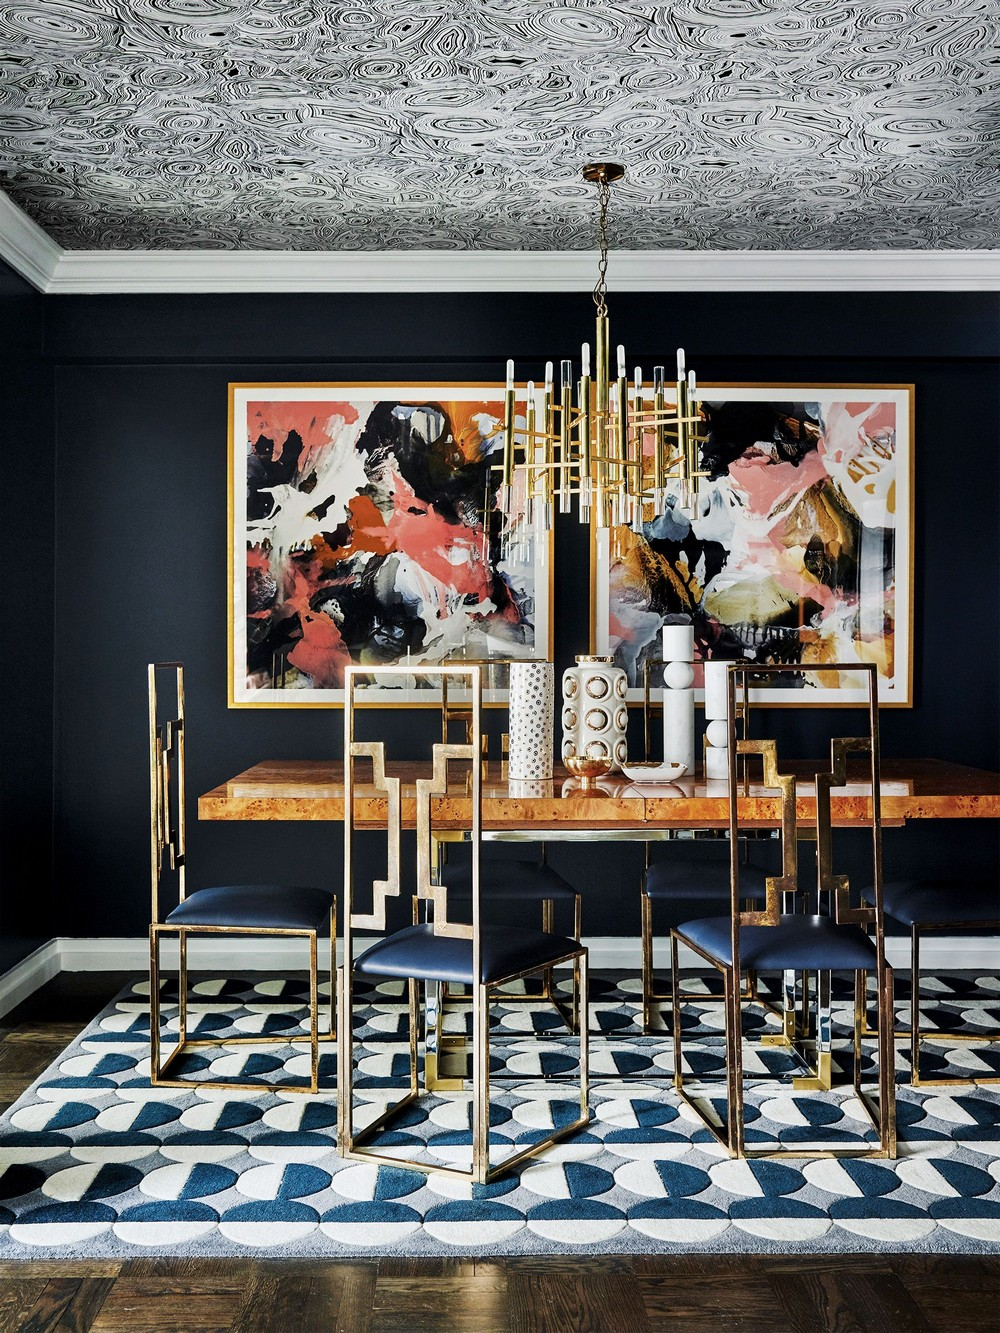 Top 20 Interior Designers From Sydney interior designers from sydney Top 20 Interior Designers From Sydney grewg natale